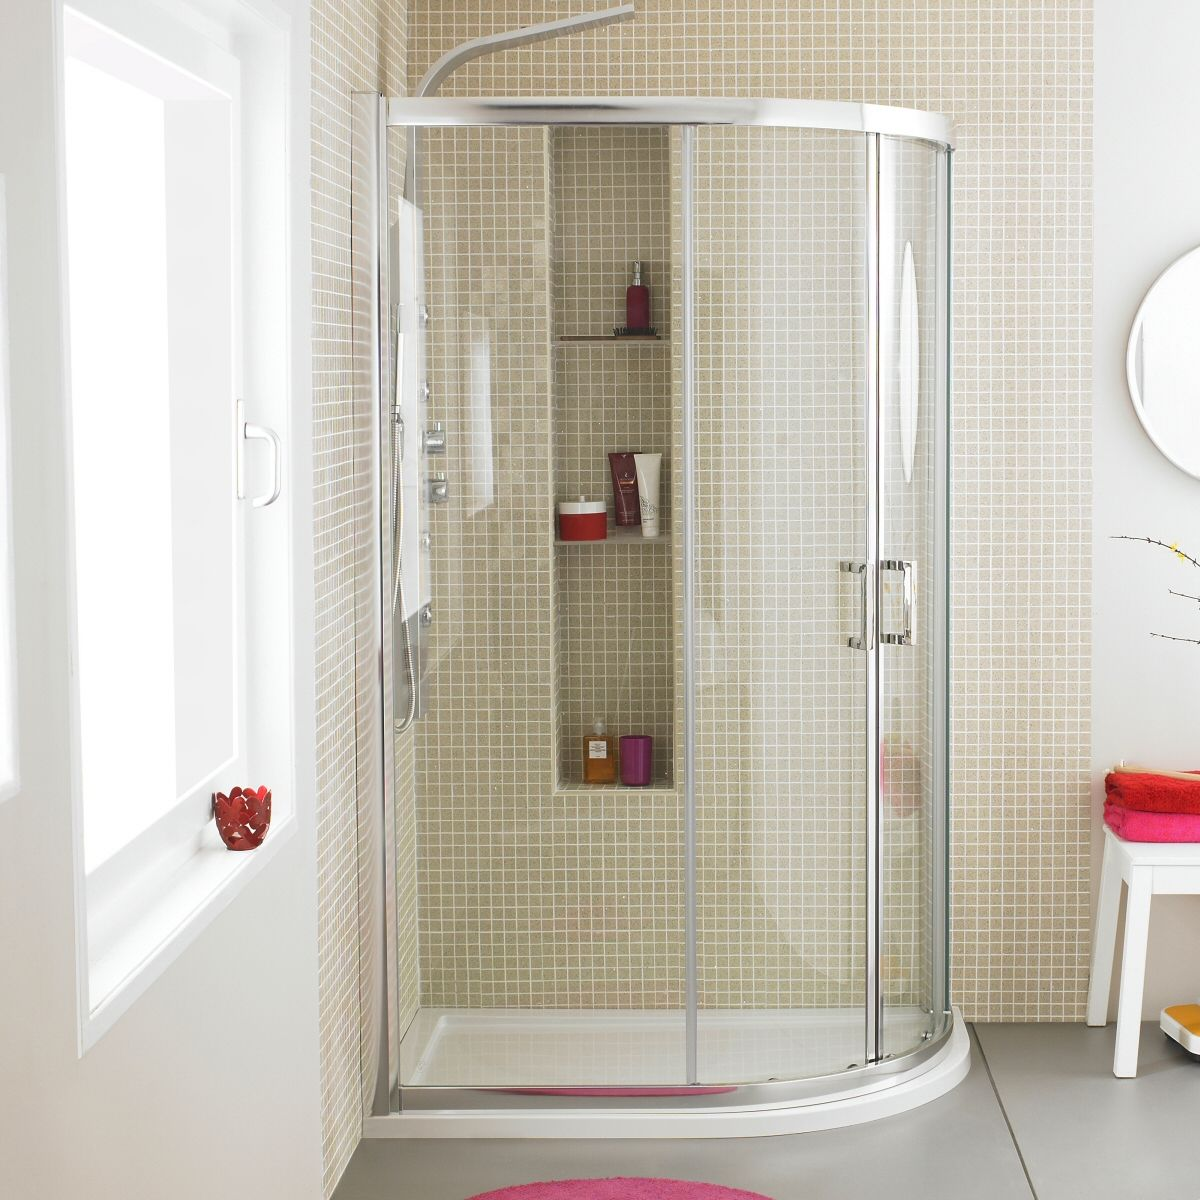 Shower cabins. Germany makes them perfectly